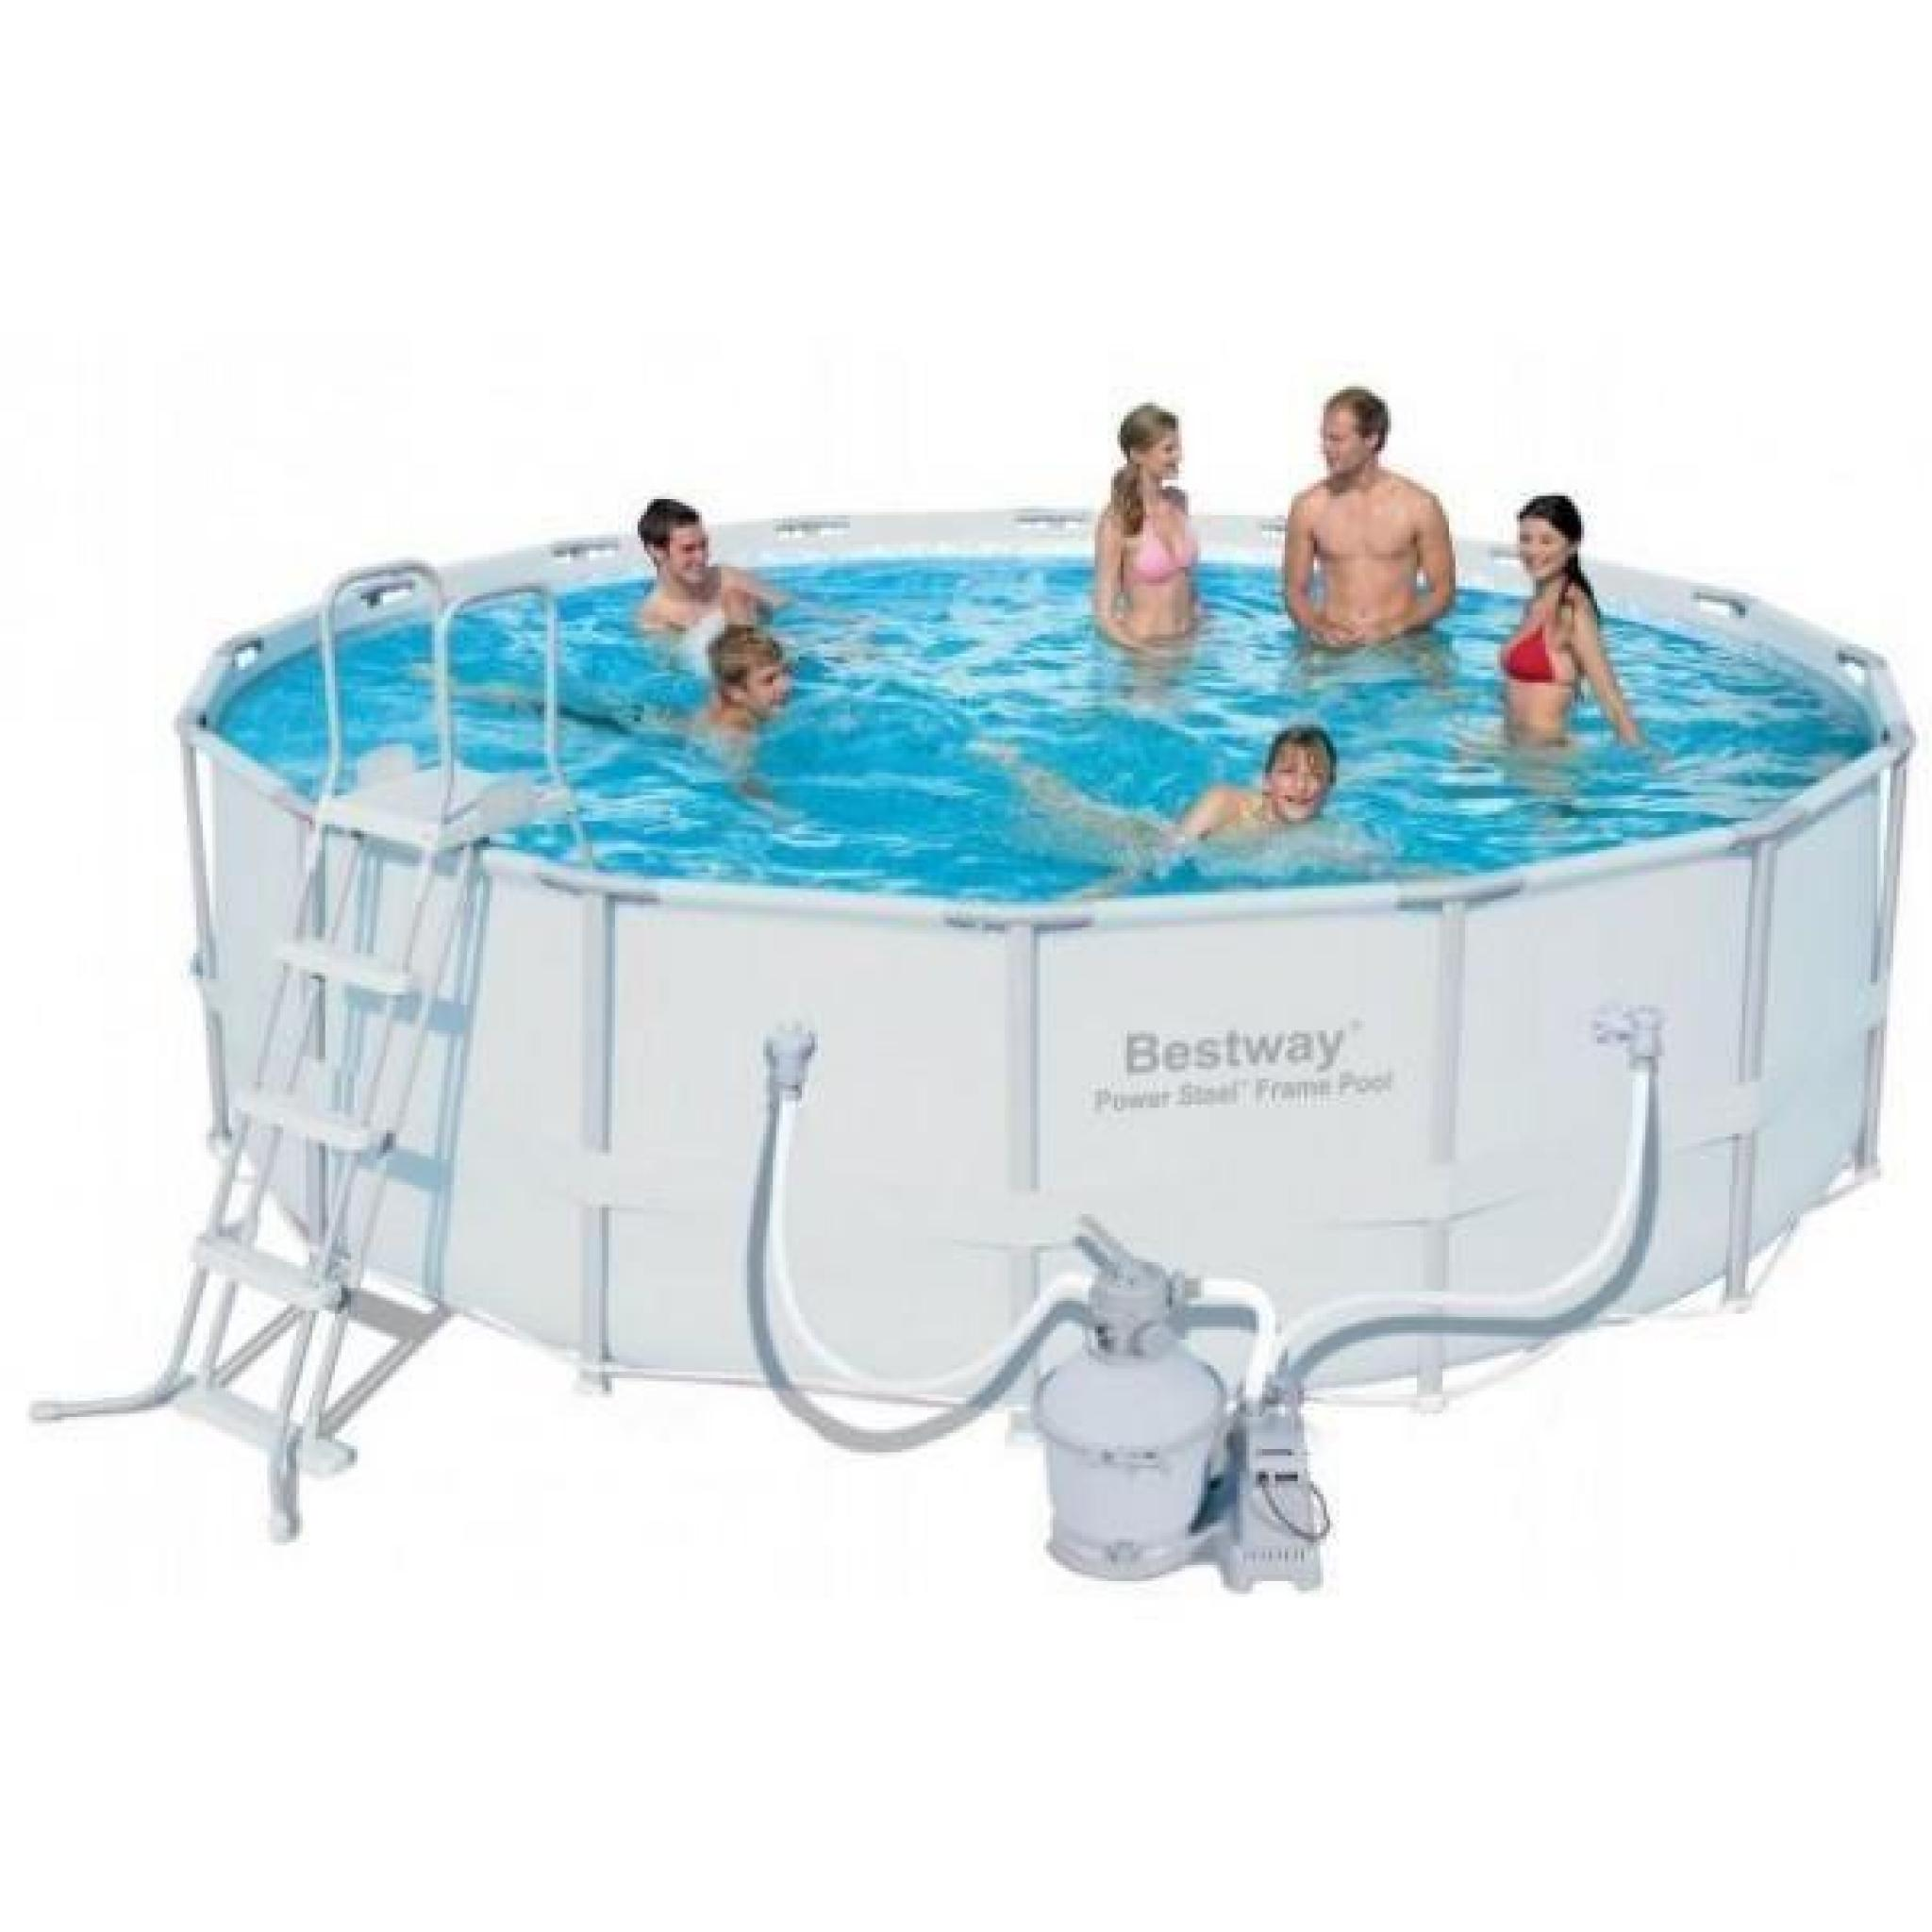 un kit piscine tubulaire ronde bestway de m filtration a sable achat vente piscine. Black Bedroom Furniture Sets. Home Design Ideas